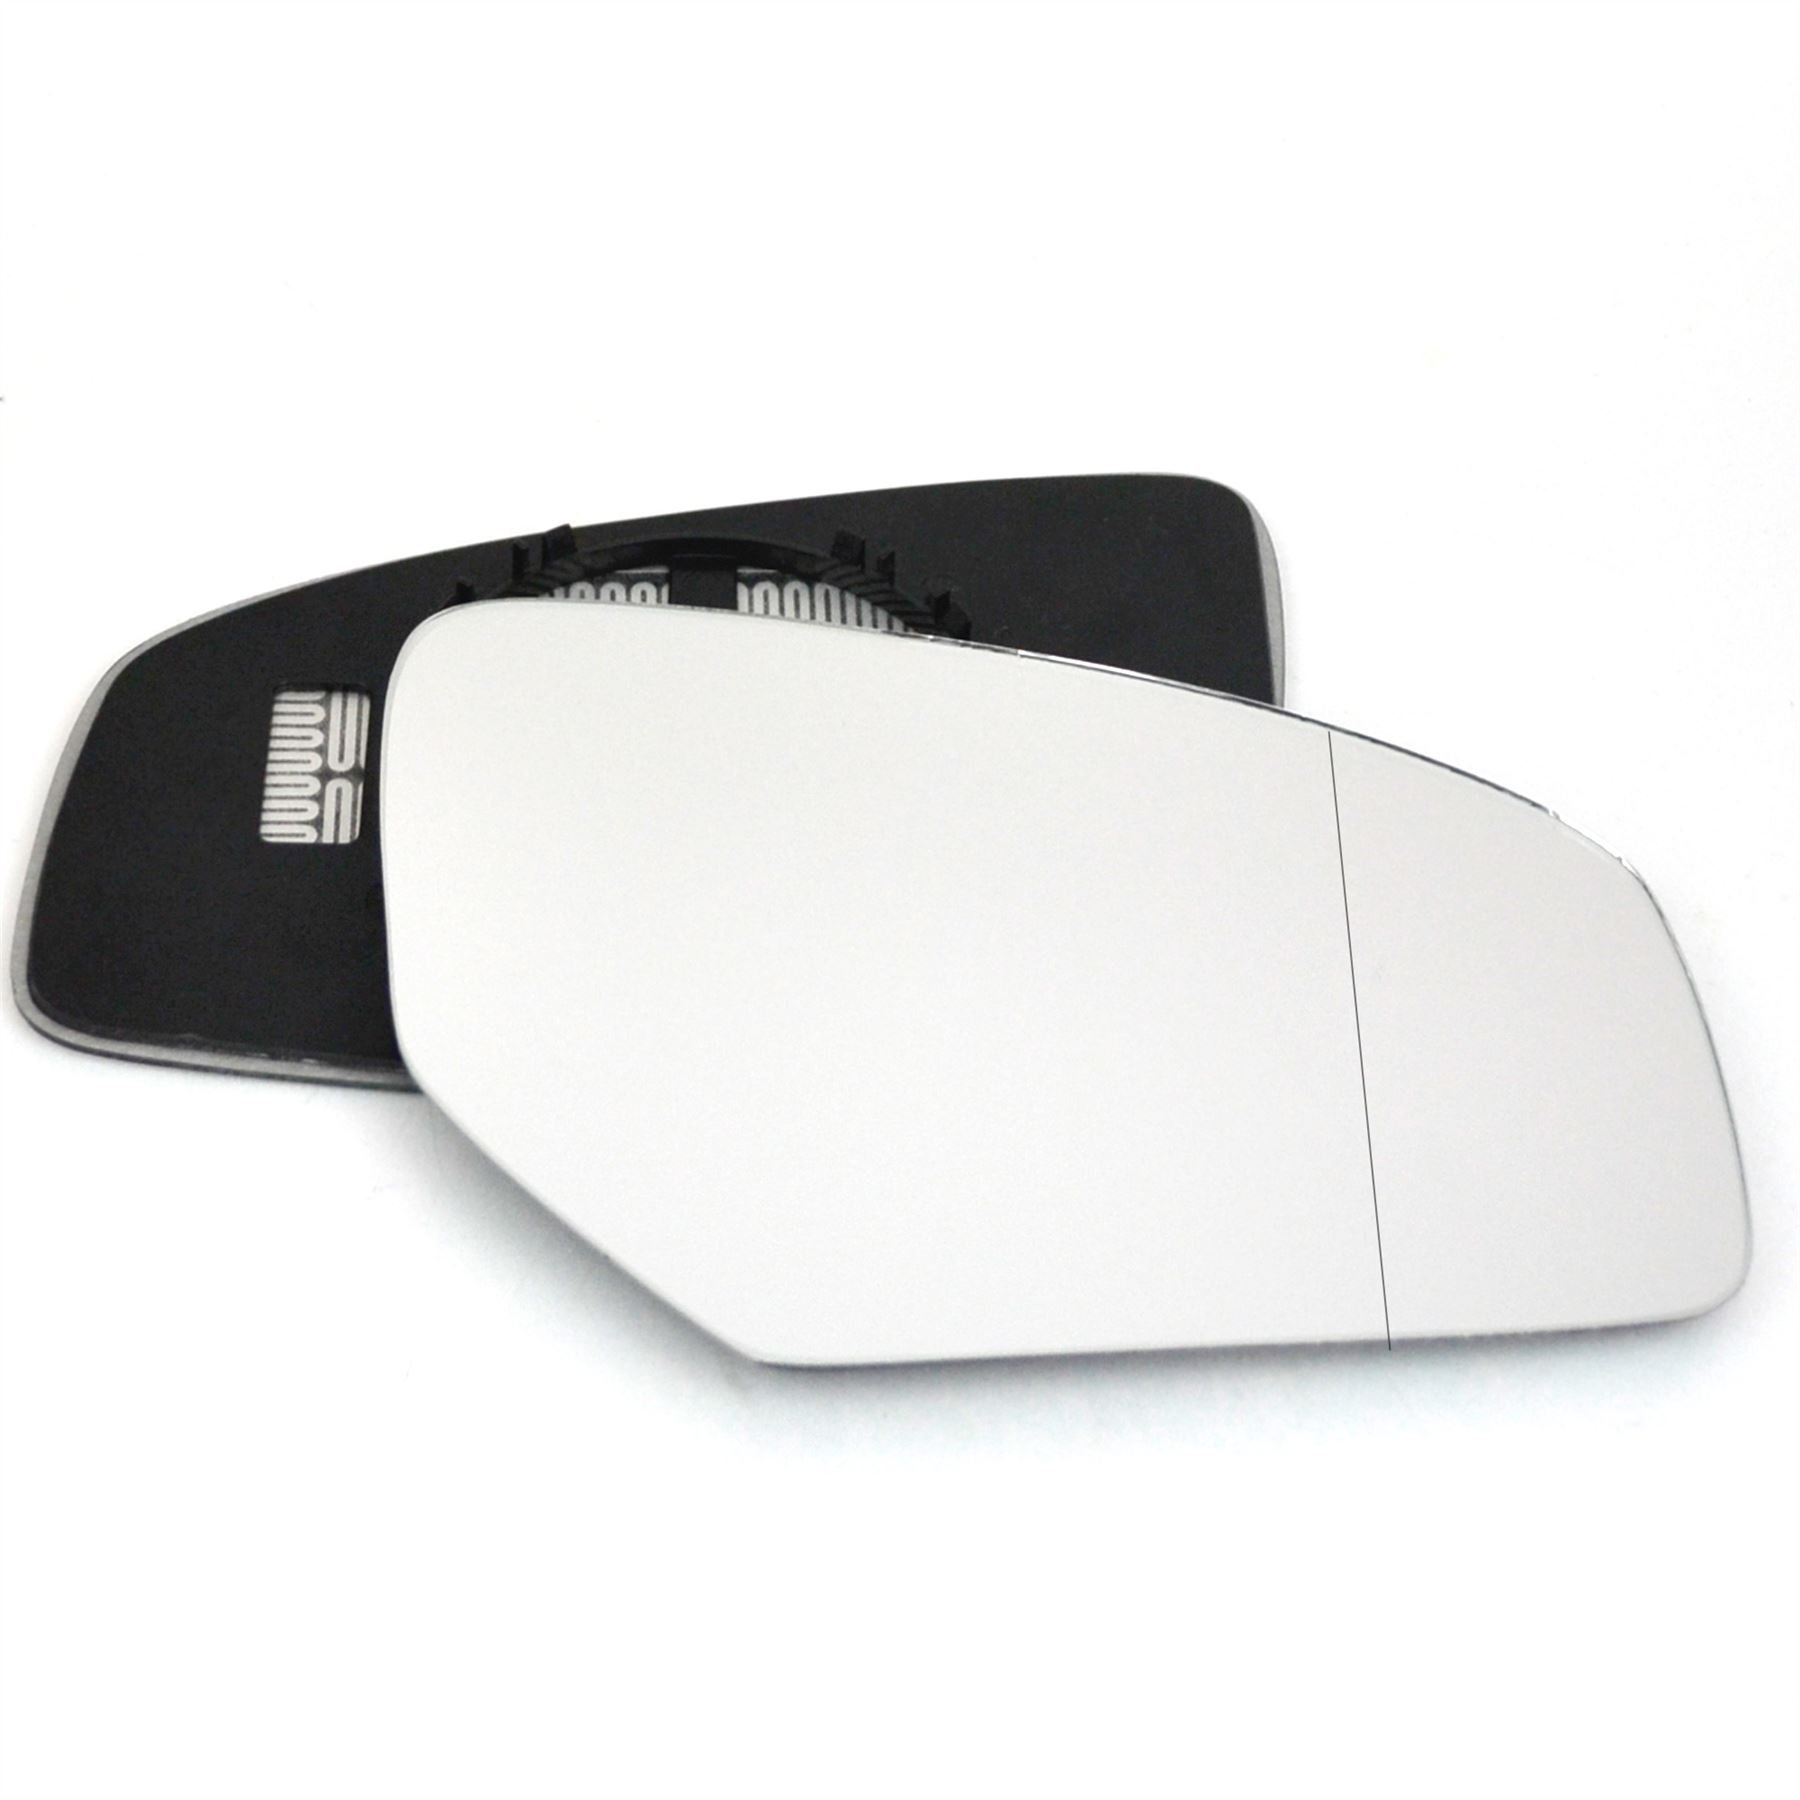 Passenger left hand side wing door Silver mirror glass with backing plate #W-SN//L-TAYS99 Clip On